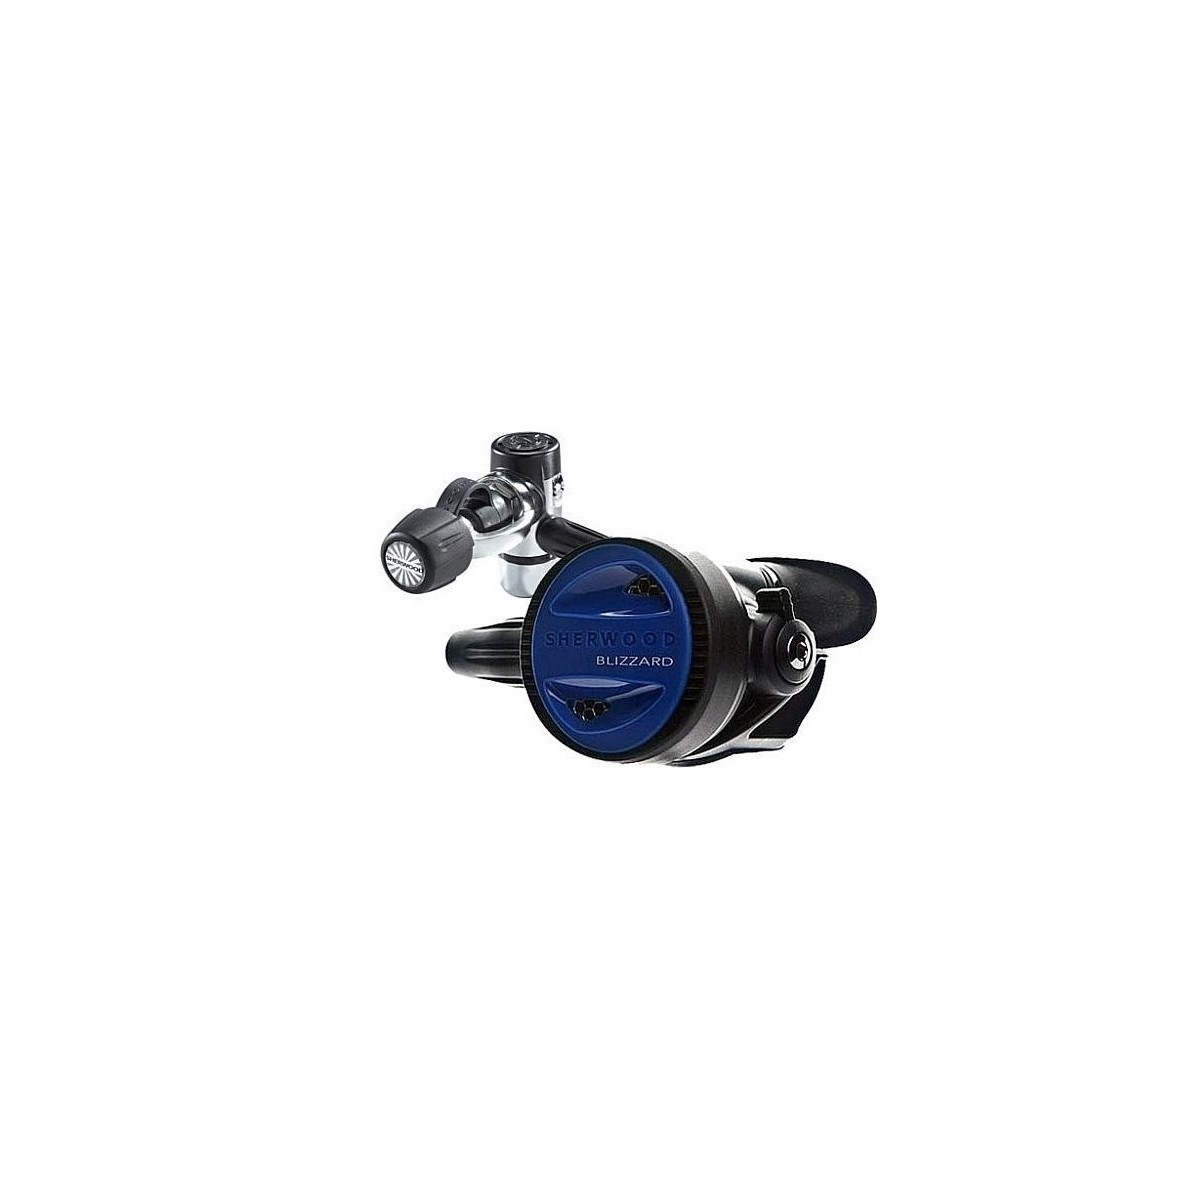 Sherwood Blizzard Cold Water 1st And 2nd Stage Scuba Diving Regulator